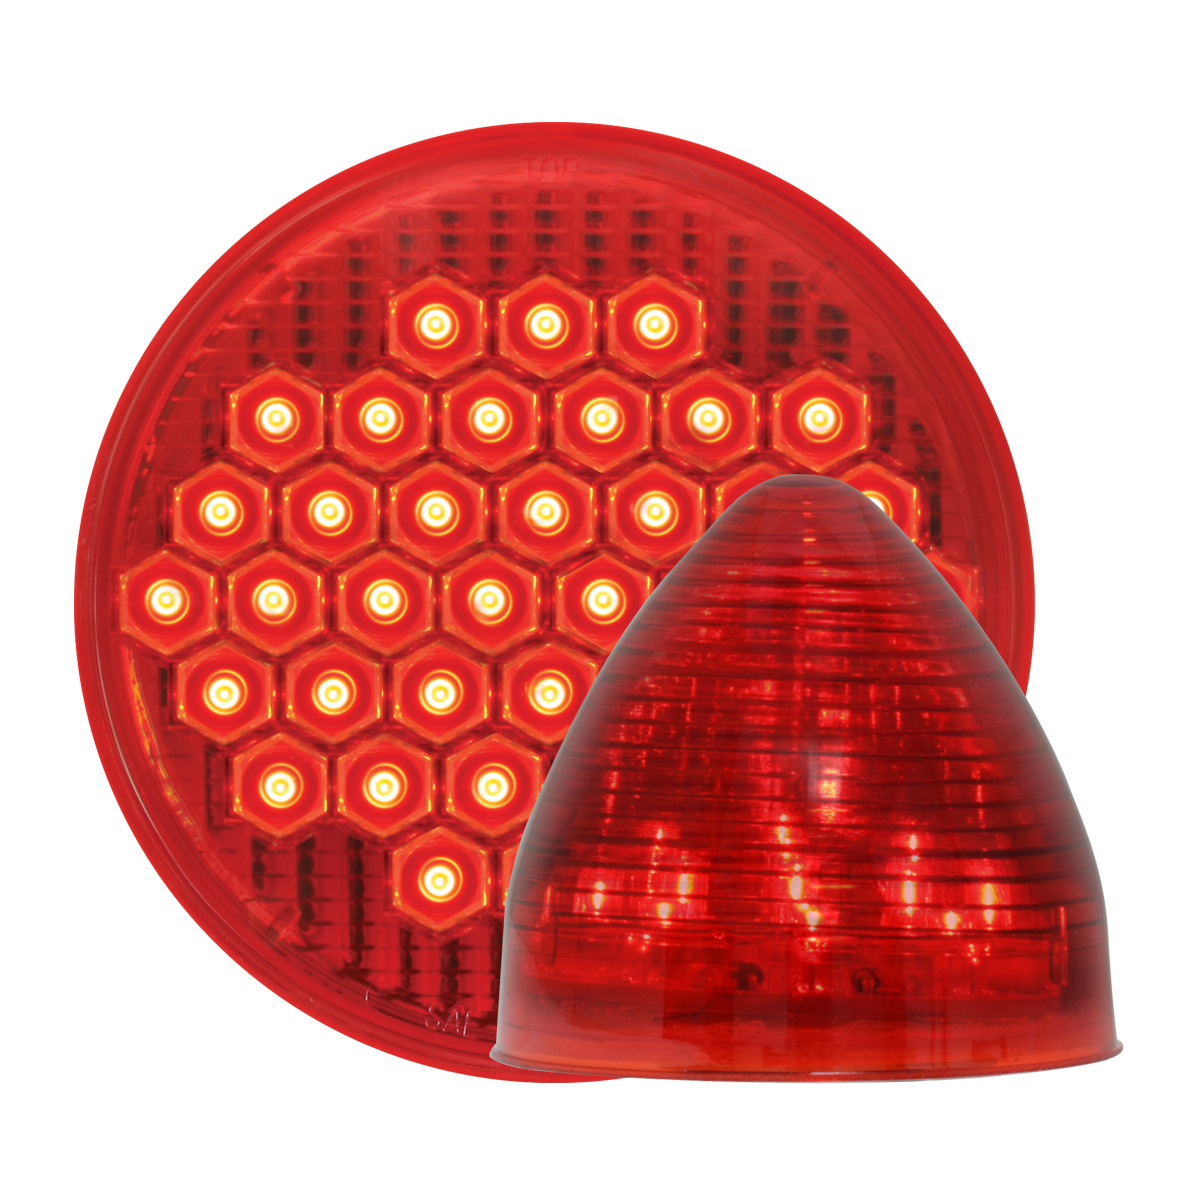 #87700/#79301 High Count LED Red/Red - Beehive